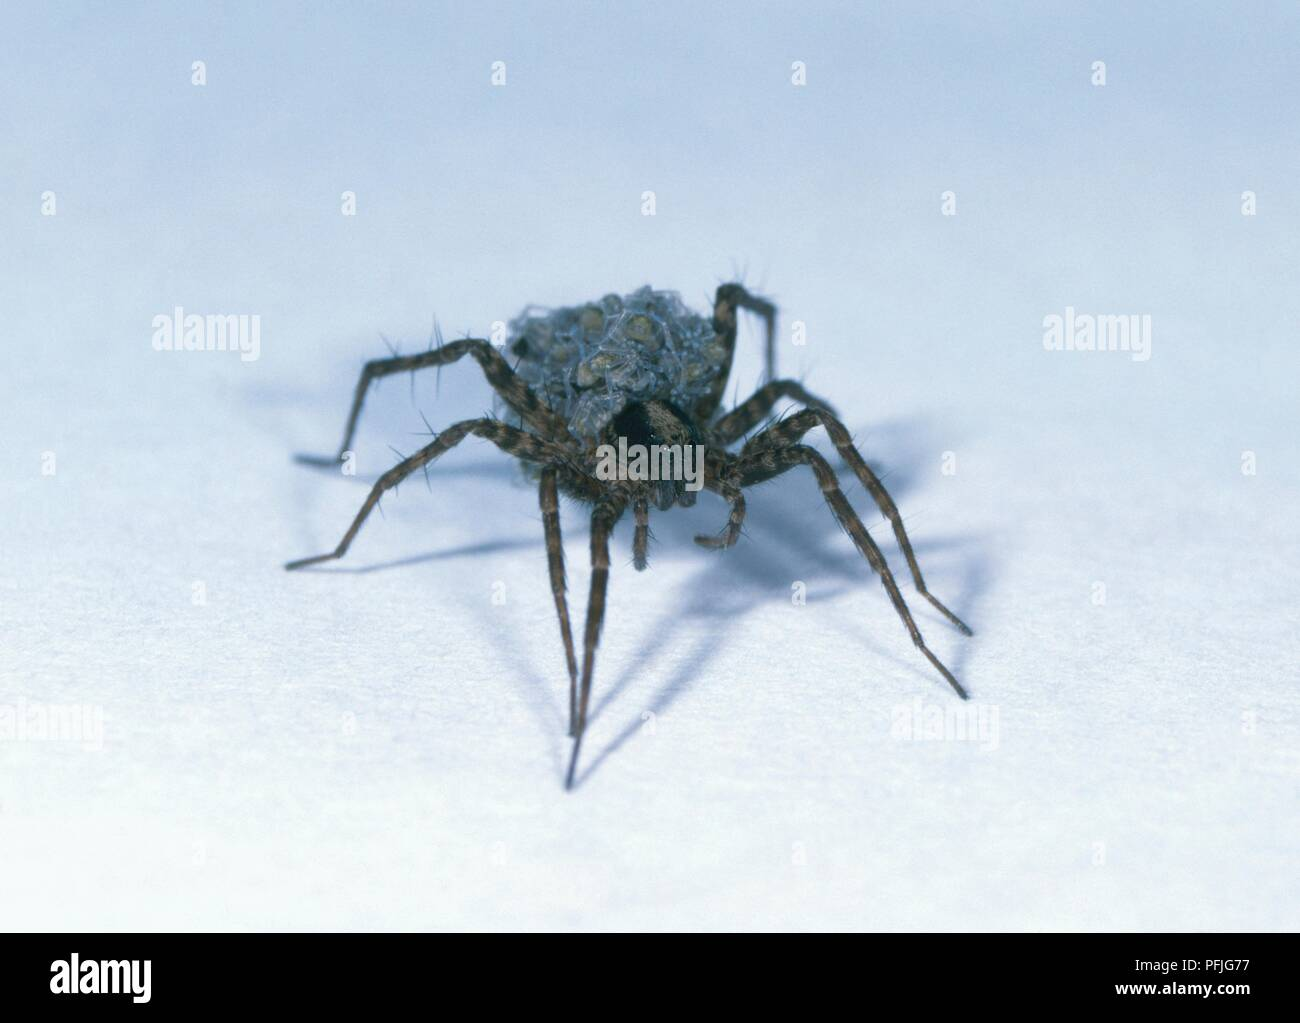 Meadow spider (Pardosa amentata) carrying young on back, front view - Stock Image